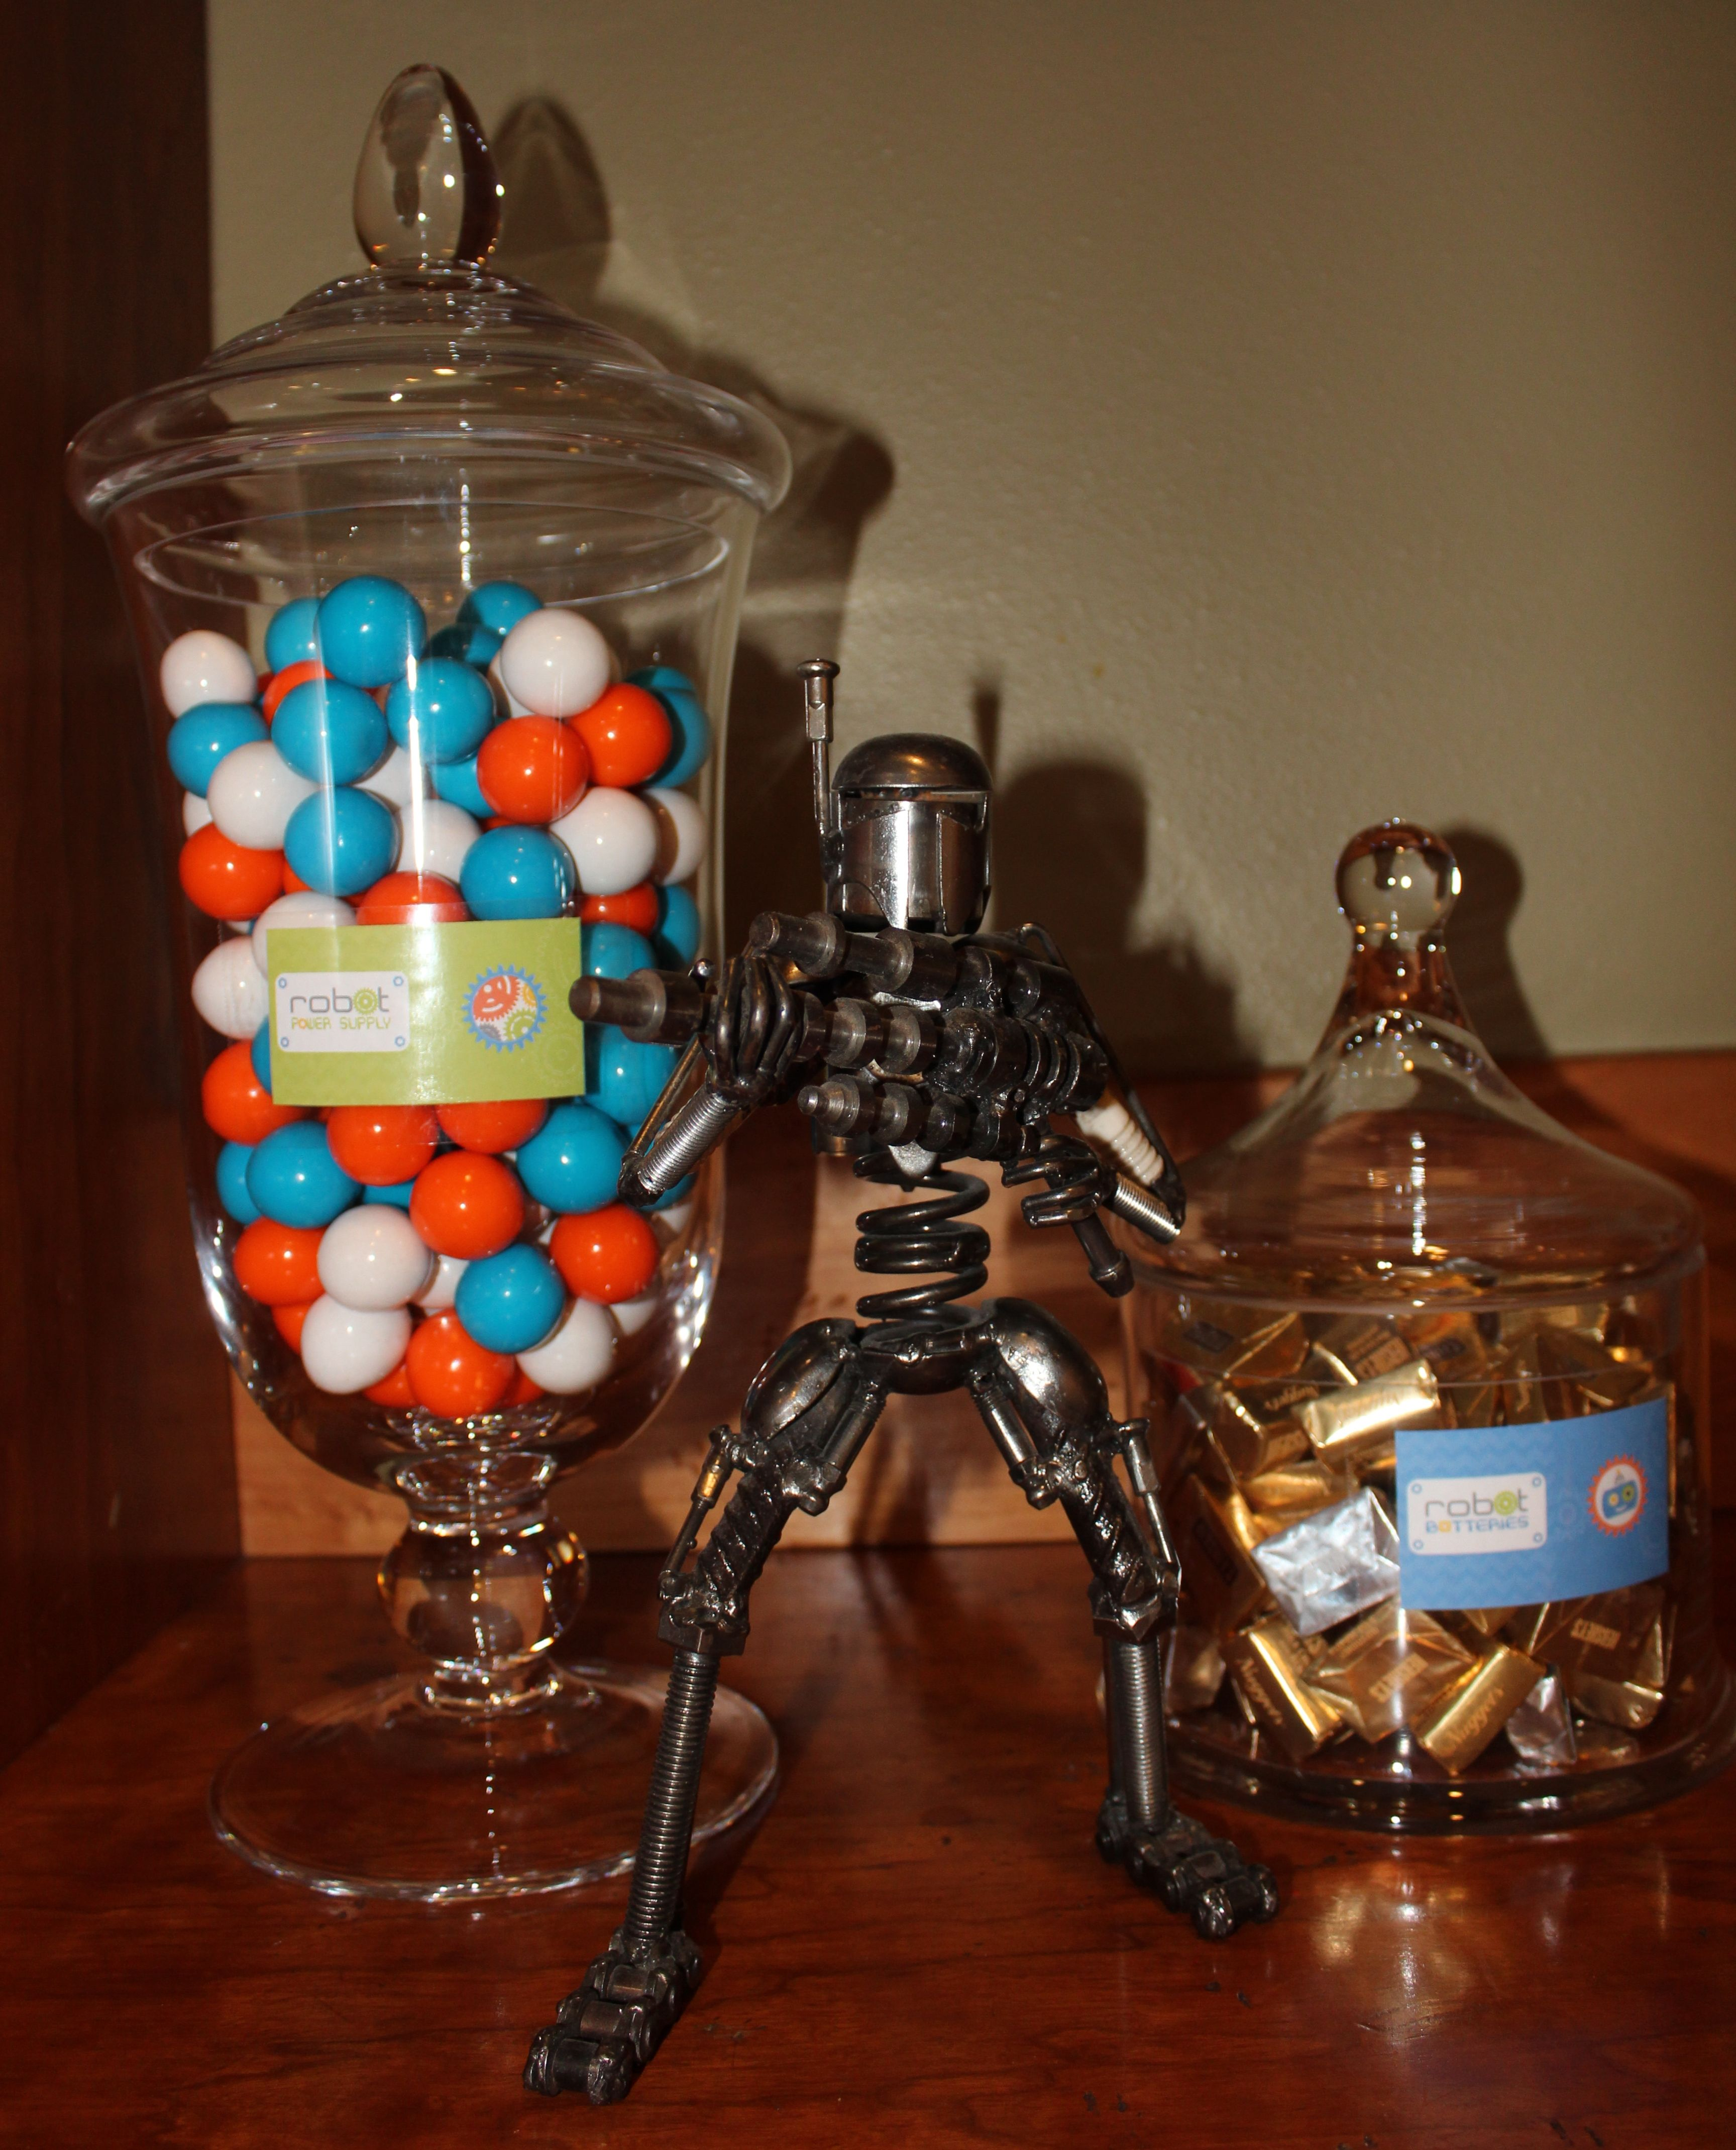 Robot Power Station / Power Supplies (orange, blue and white gumballs) and Batteries (mini Hershey bars in gold and silver wrappers) guarded by a mini robot. - Robot Birthday Party #robot #robotparty #candy #dessert